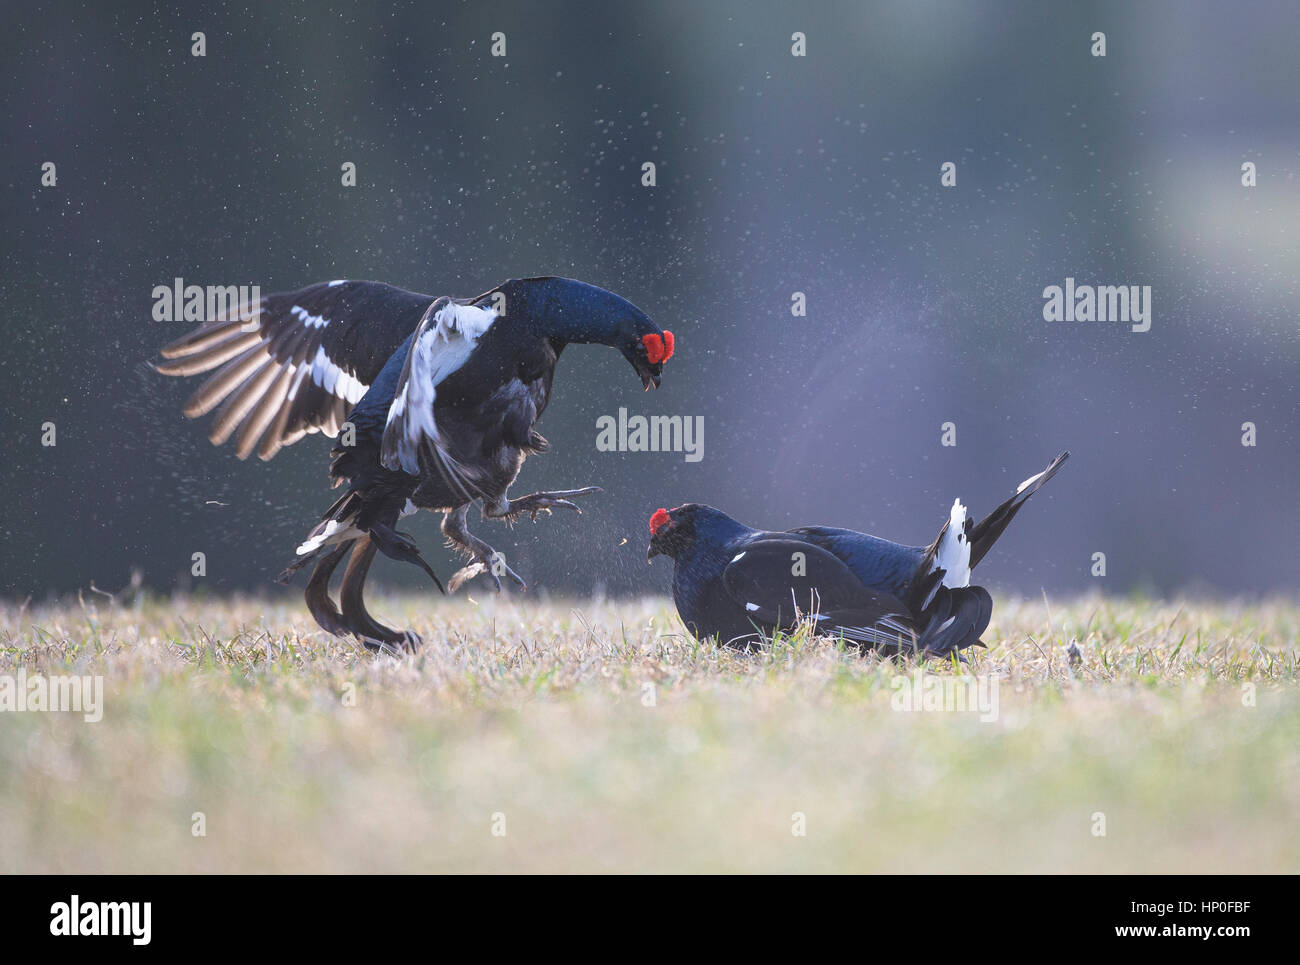 Two Male Black Grouse ( Lyrurus tetrix) fighting each other at an early morning lek - Stock Image